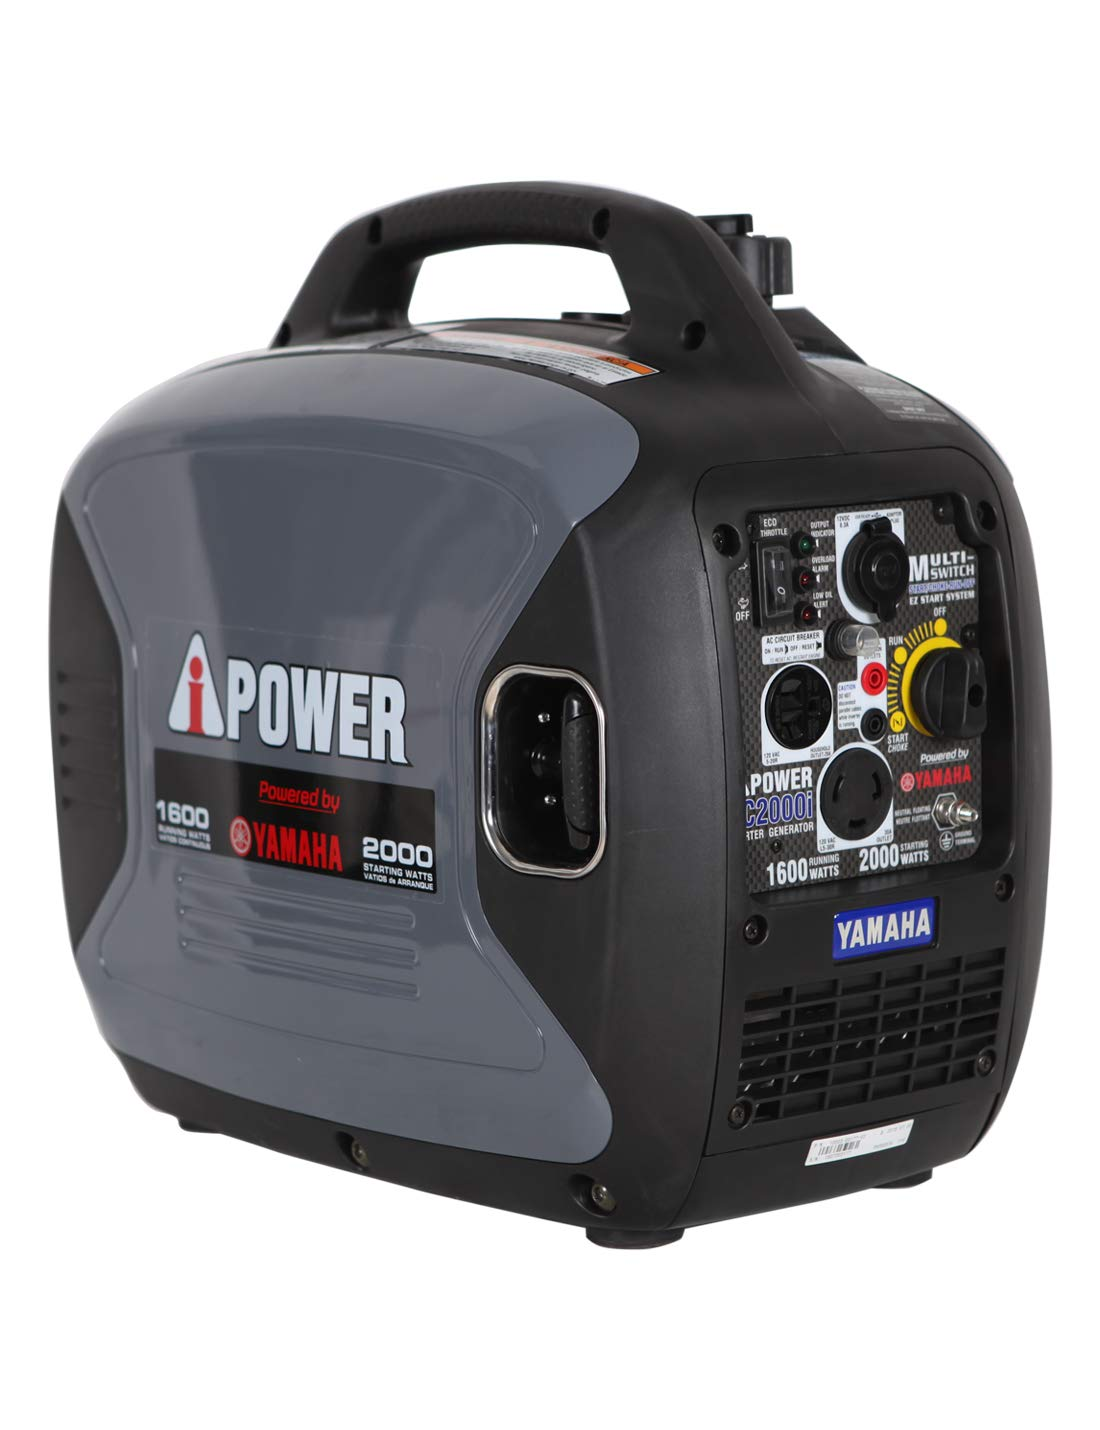 Yamaha Engine Inverter Generator 2000 Watt 120 V Super Quiet CARB EPA Complied SC2000iV_RFB Renewed